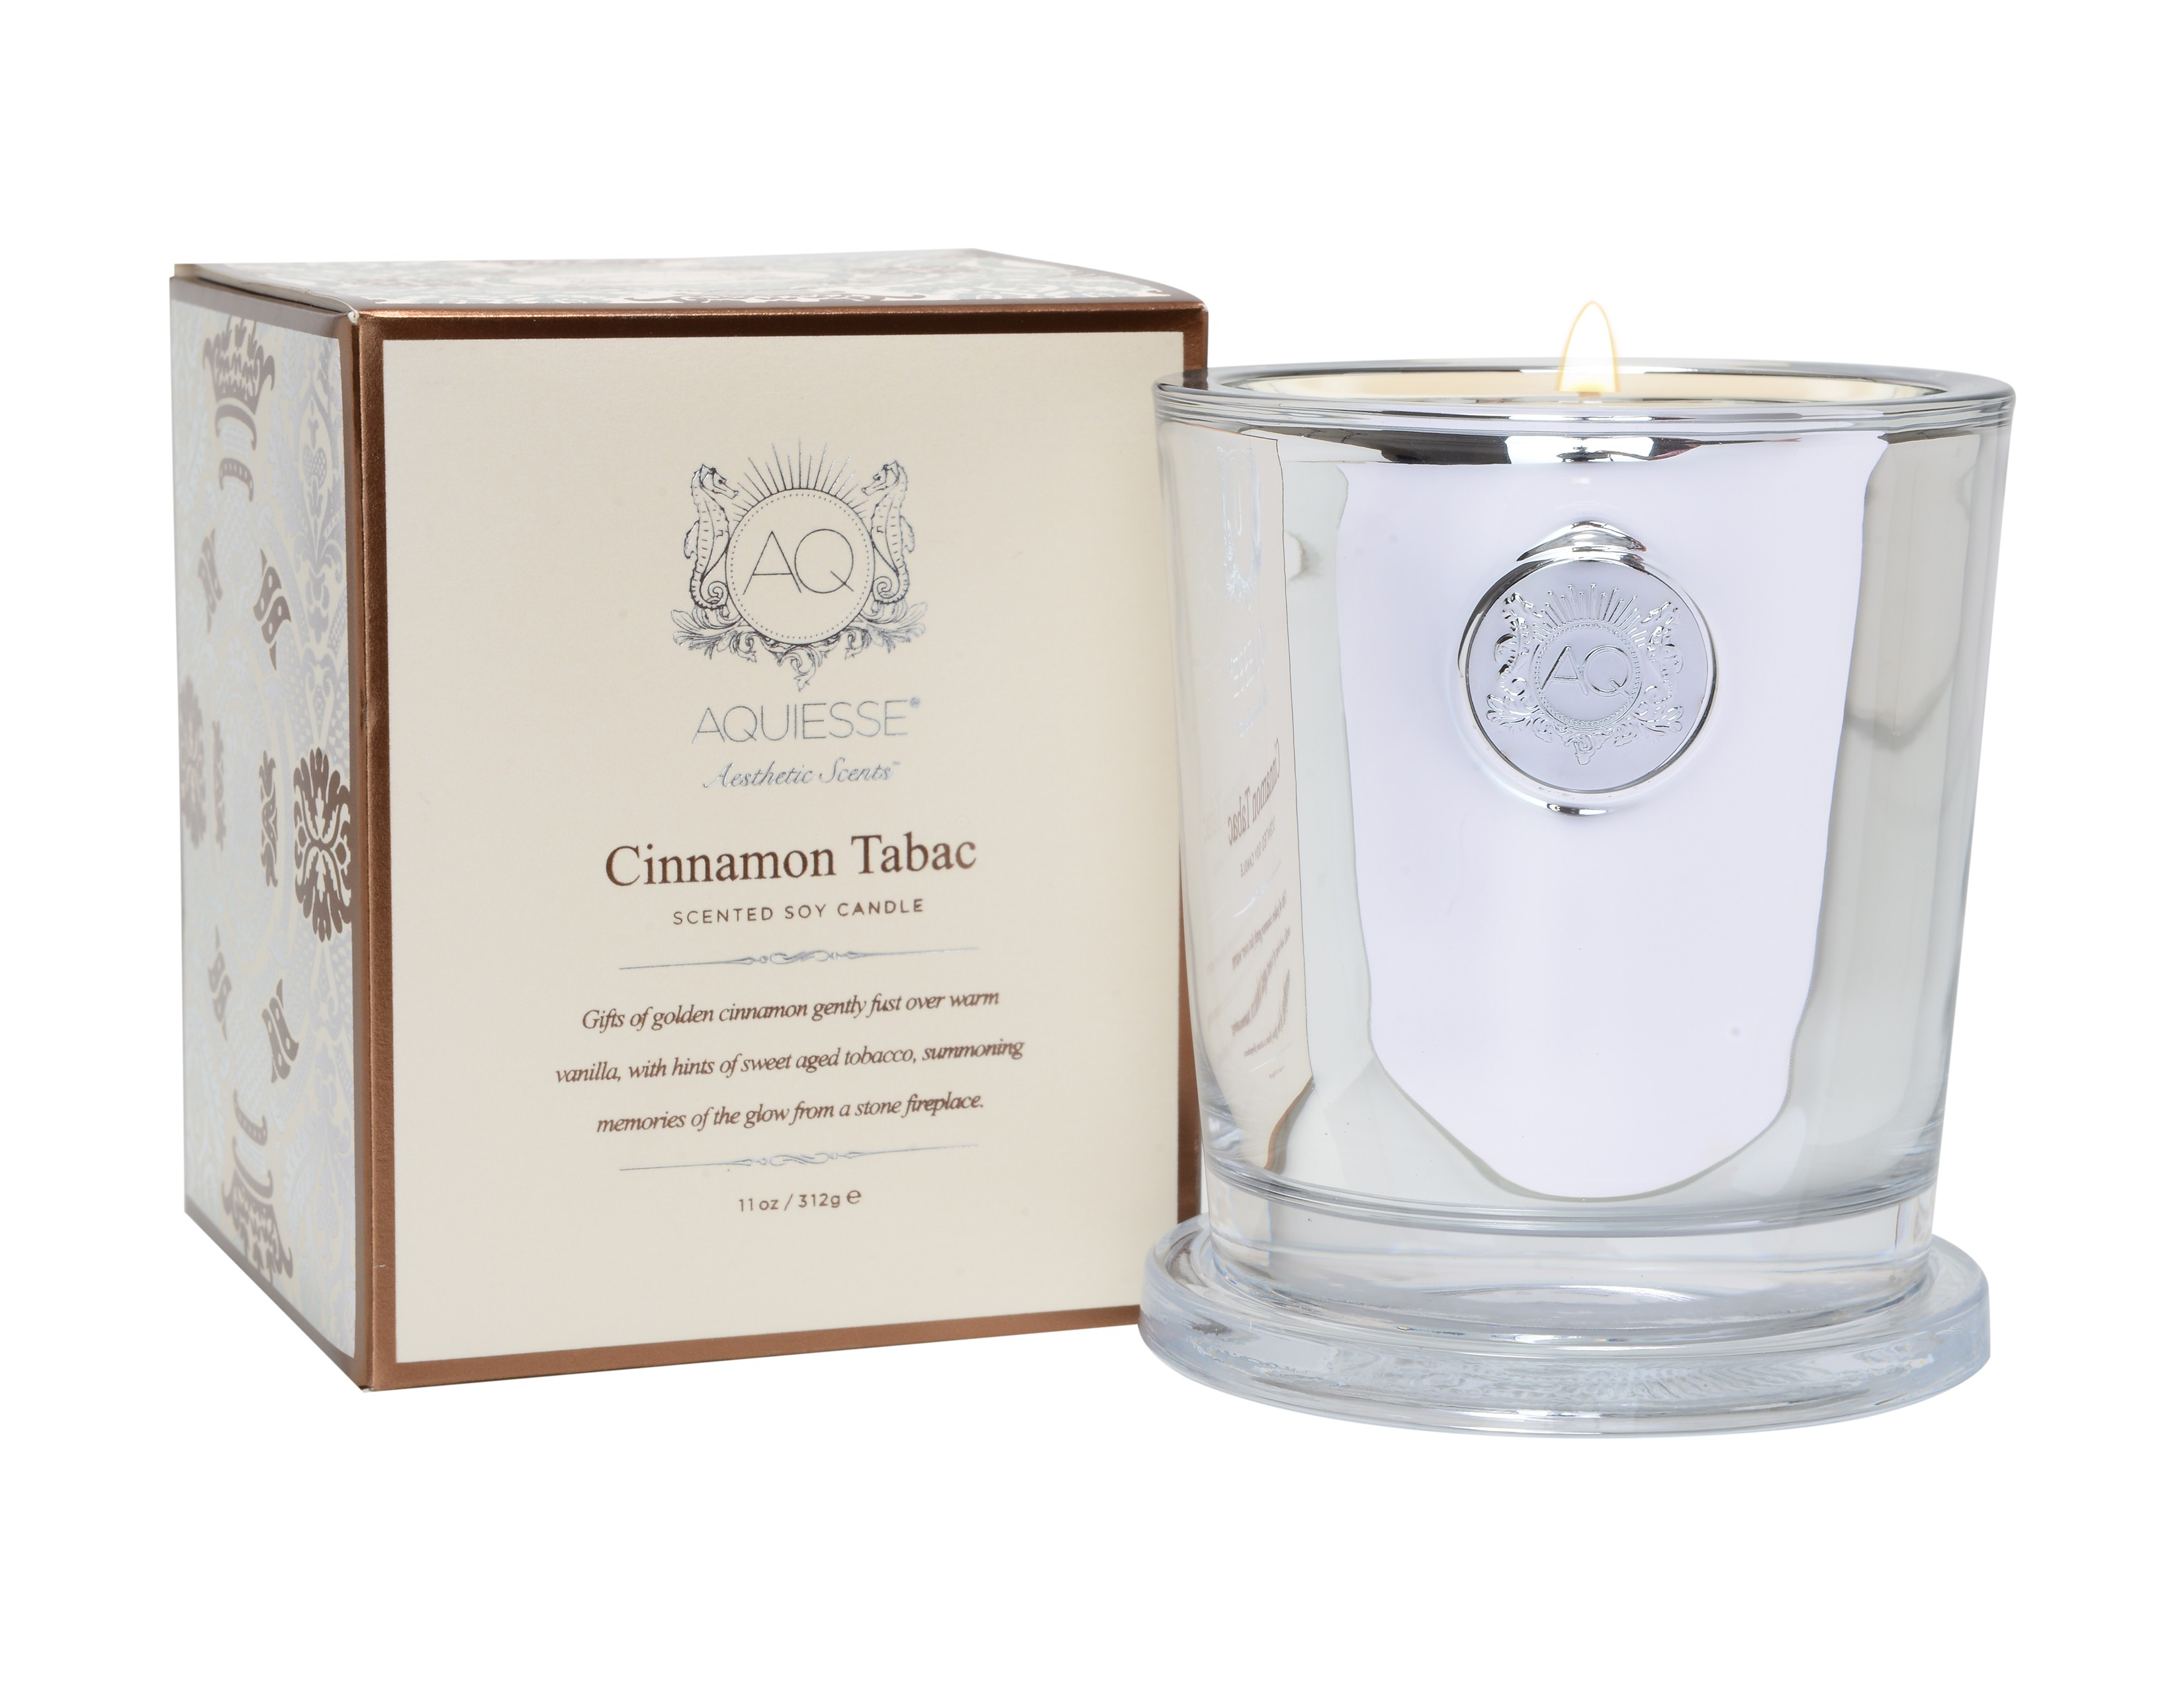 Aquiesse Cinnamon Tabac Large Holiday Candle | James Anthony Collection